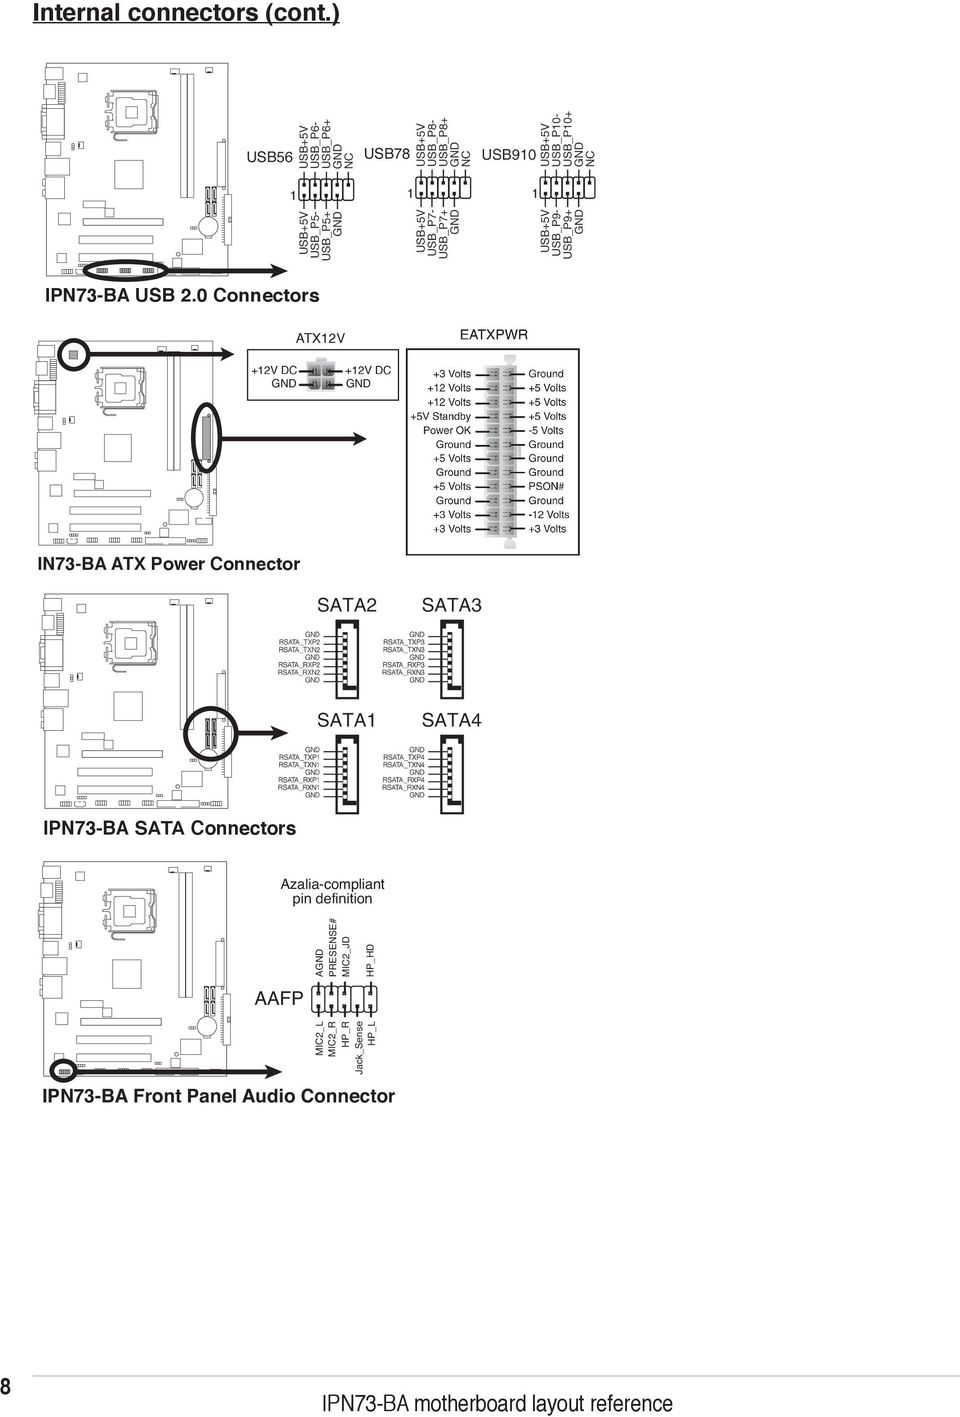 Azalia-compliant pin definition MIC2_L AGND MIC2_R